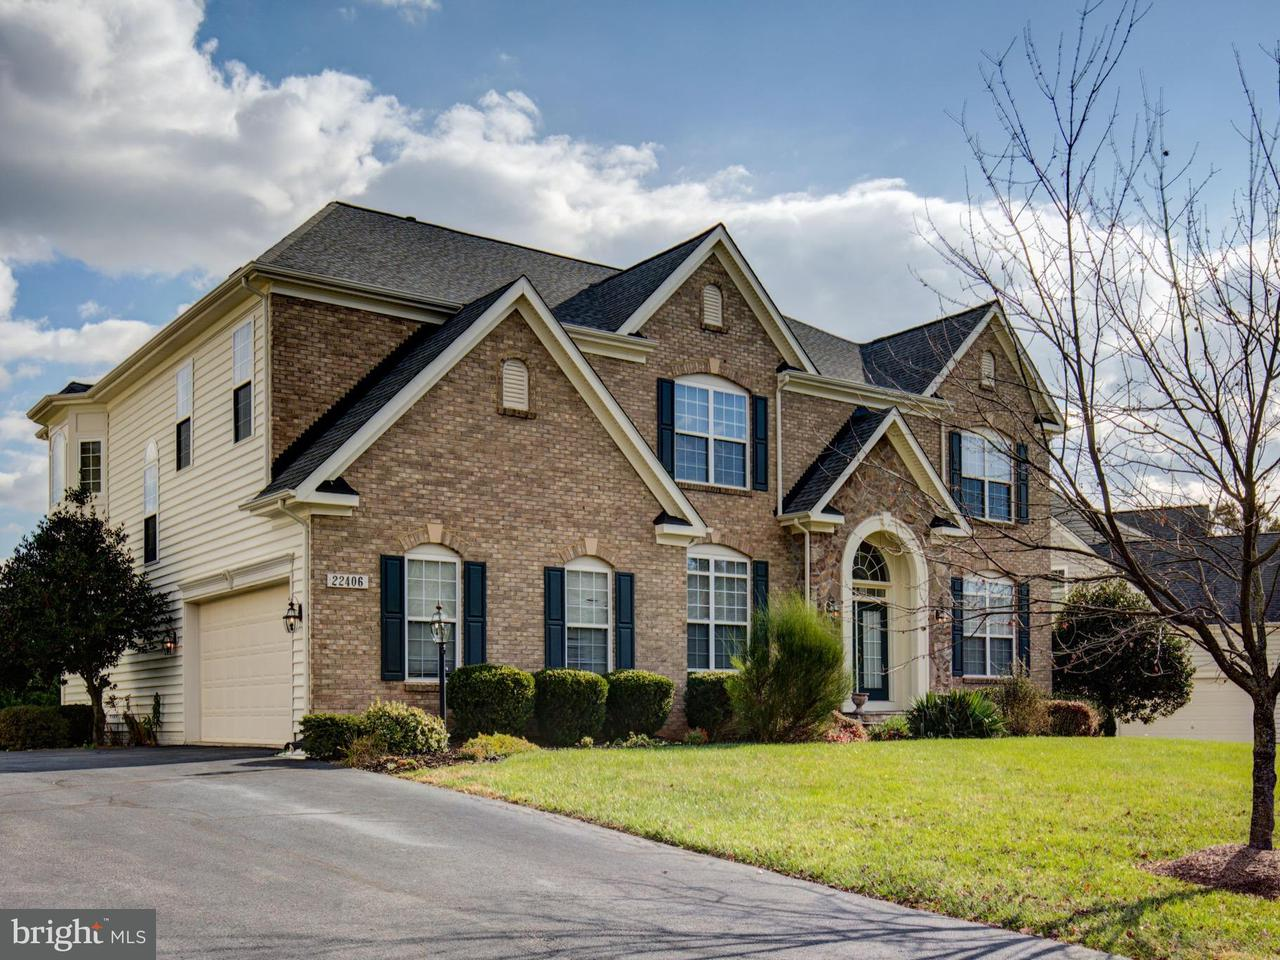 Single Family Home for Sale at 22406 DOLOMITE HILLS Drive 22406 DOLOMITE HILLS Drive Ashburn, Virginia 20148 United States